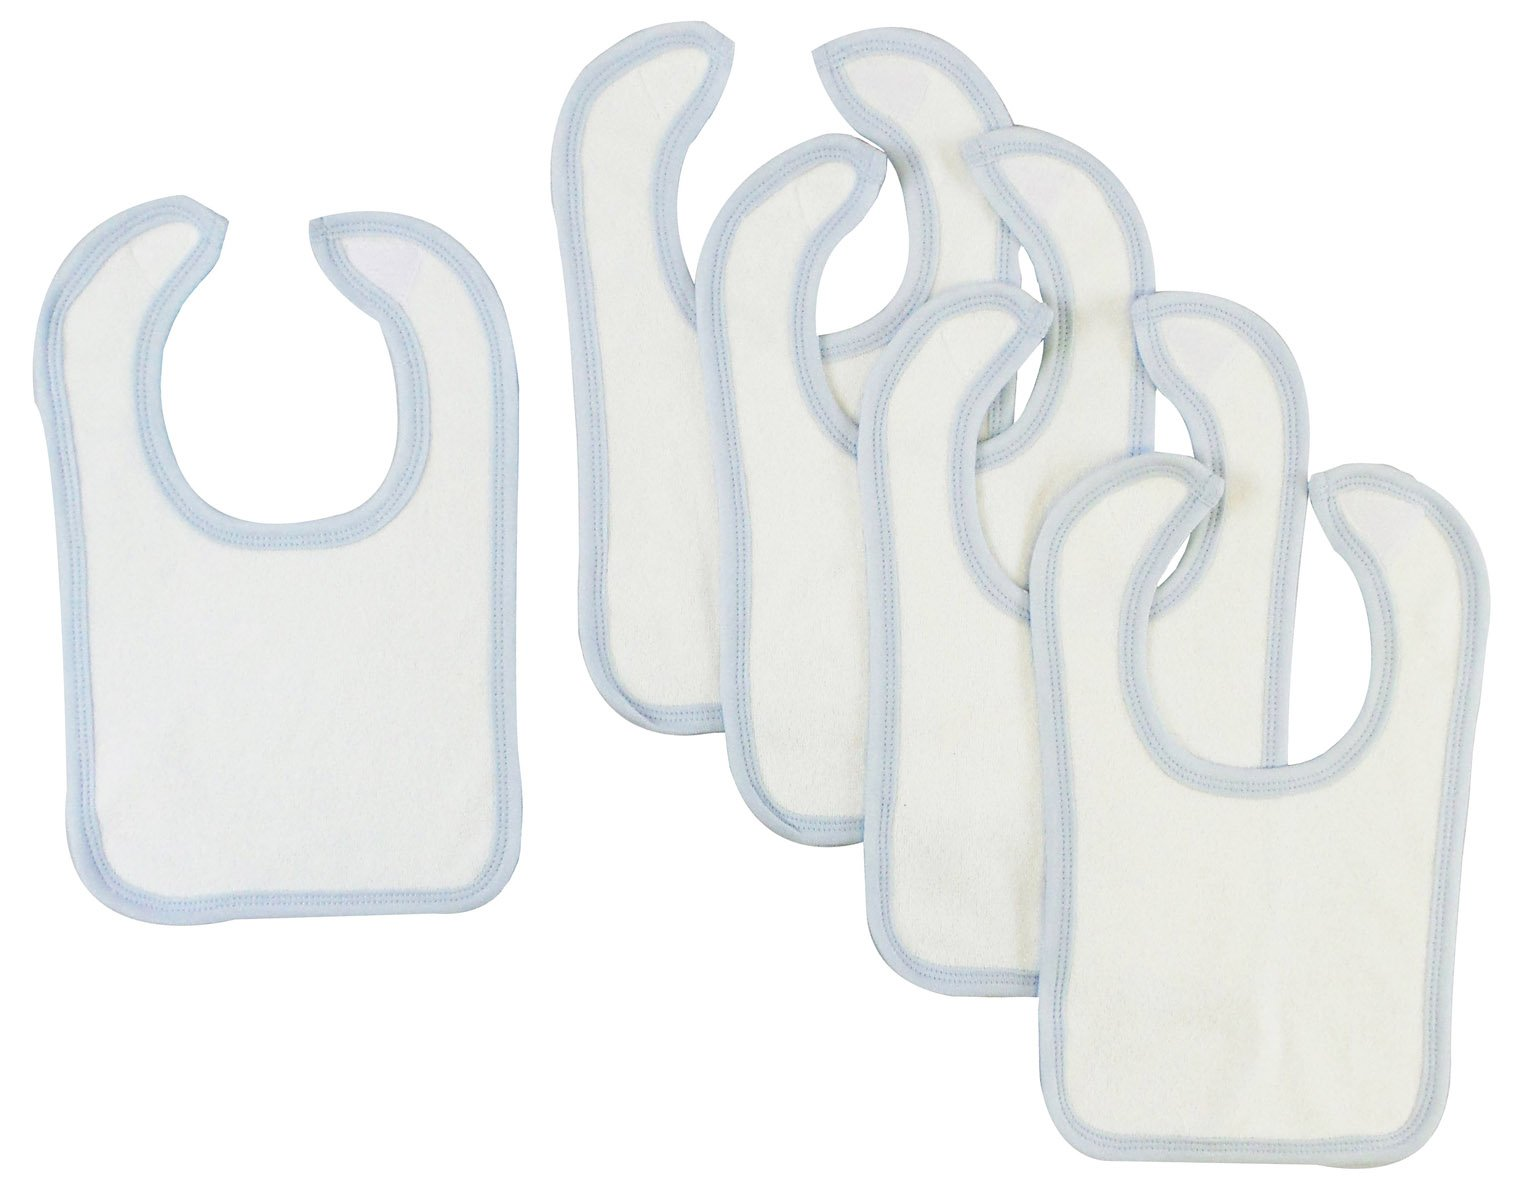 Bambini White Bib With Blue Trim (Pack of 5) - Baby World Inc